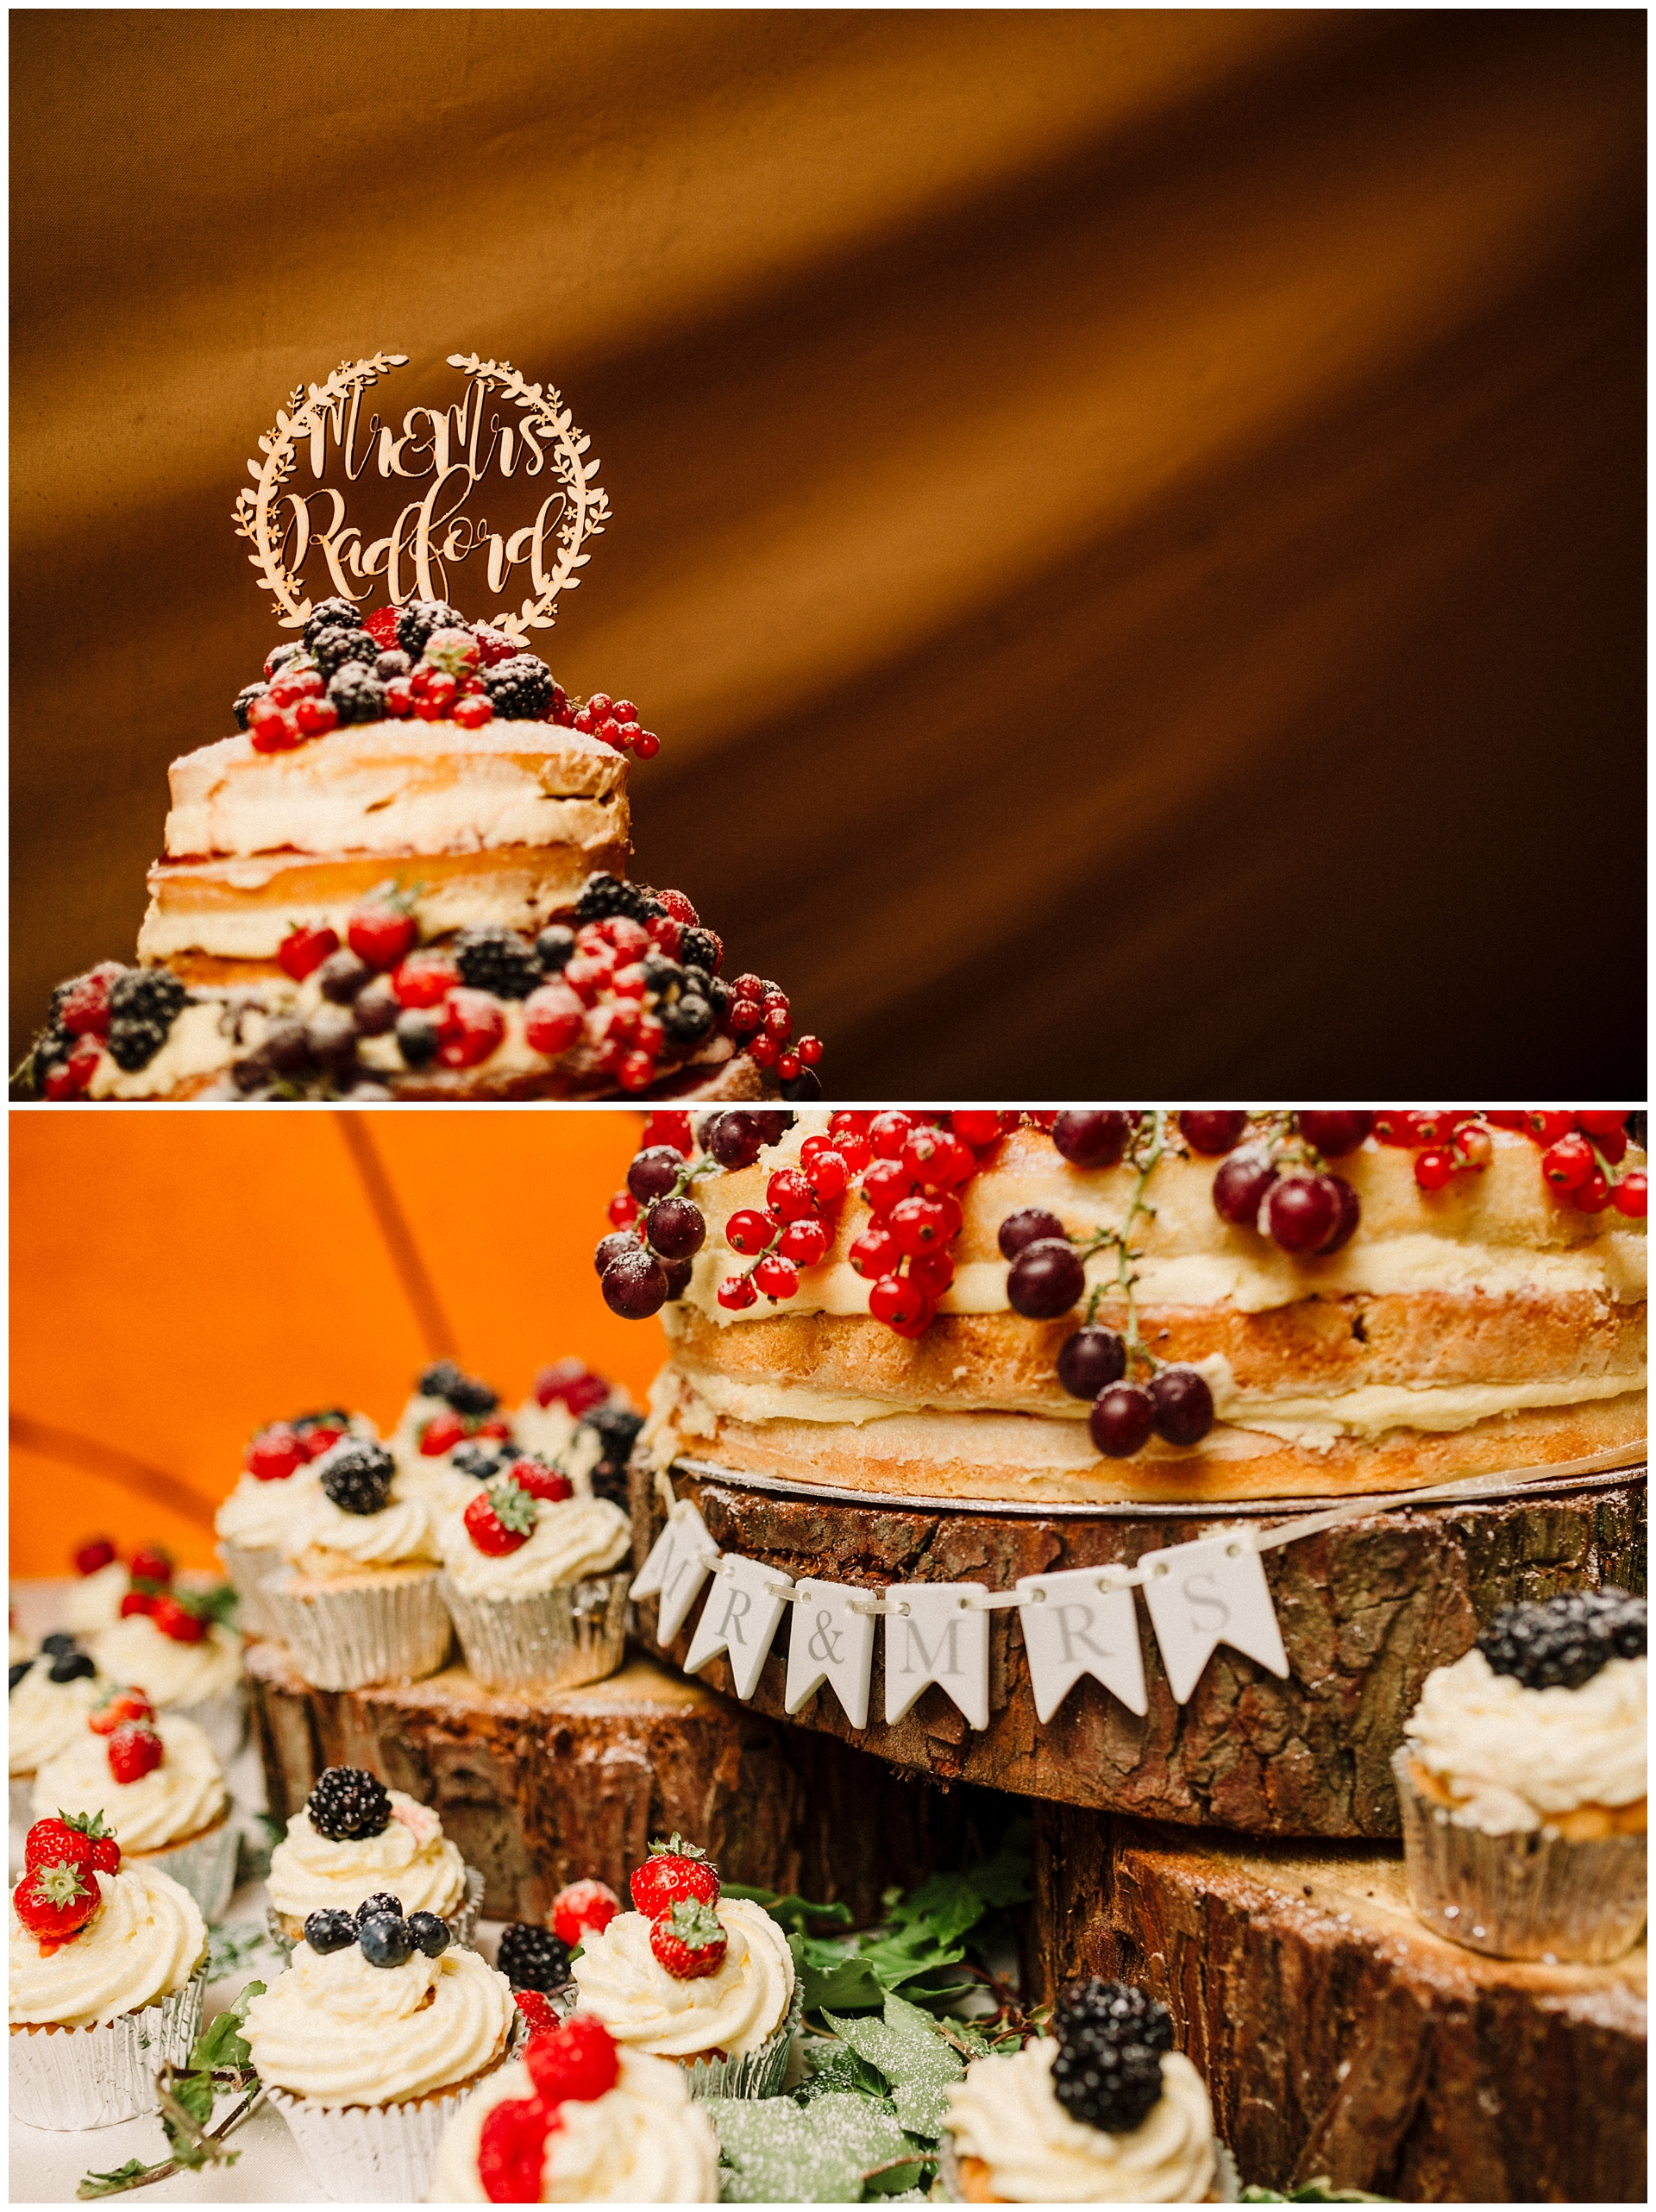 A wooden cake topper on a naked wedding cake and cupcakes covered in berries